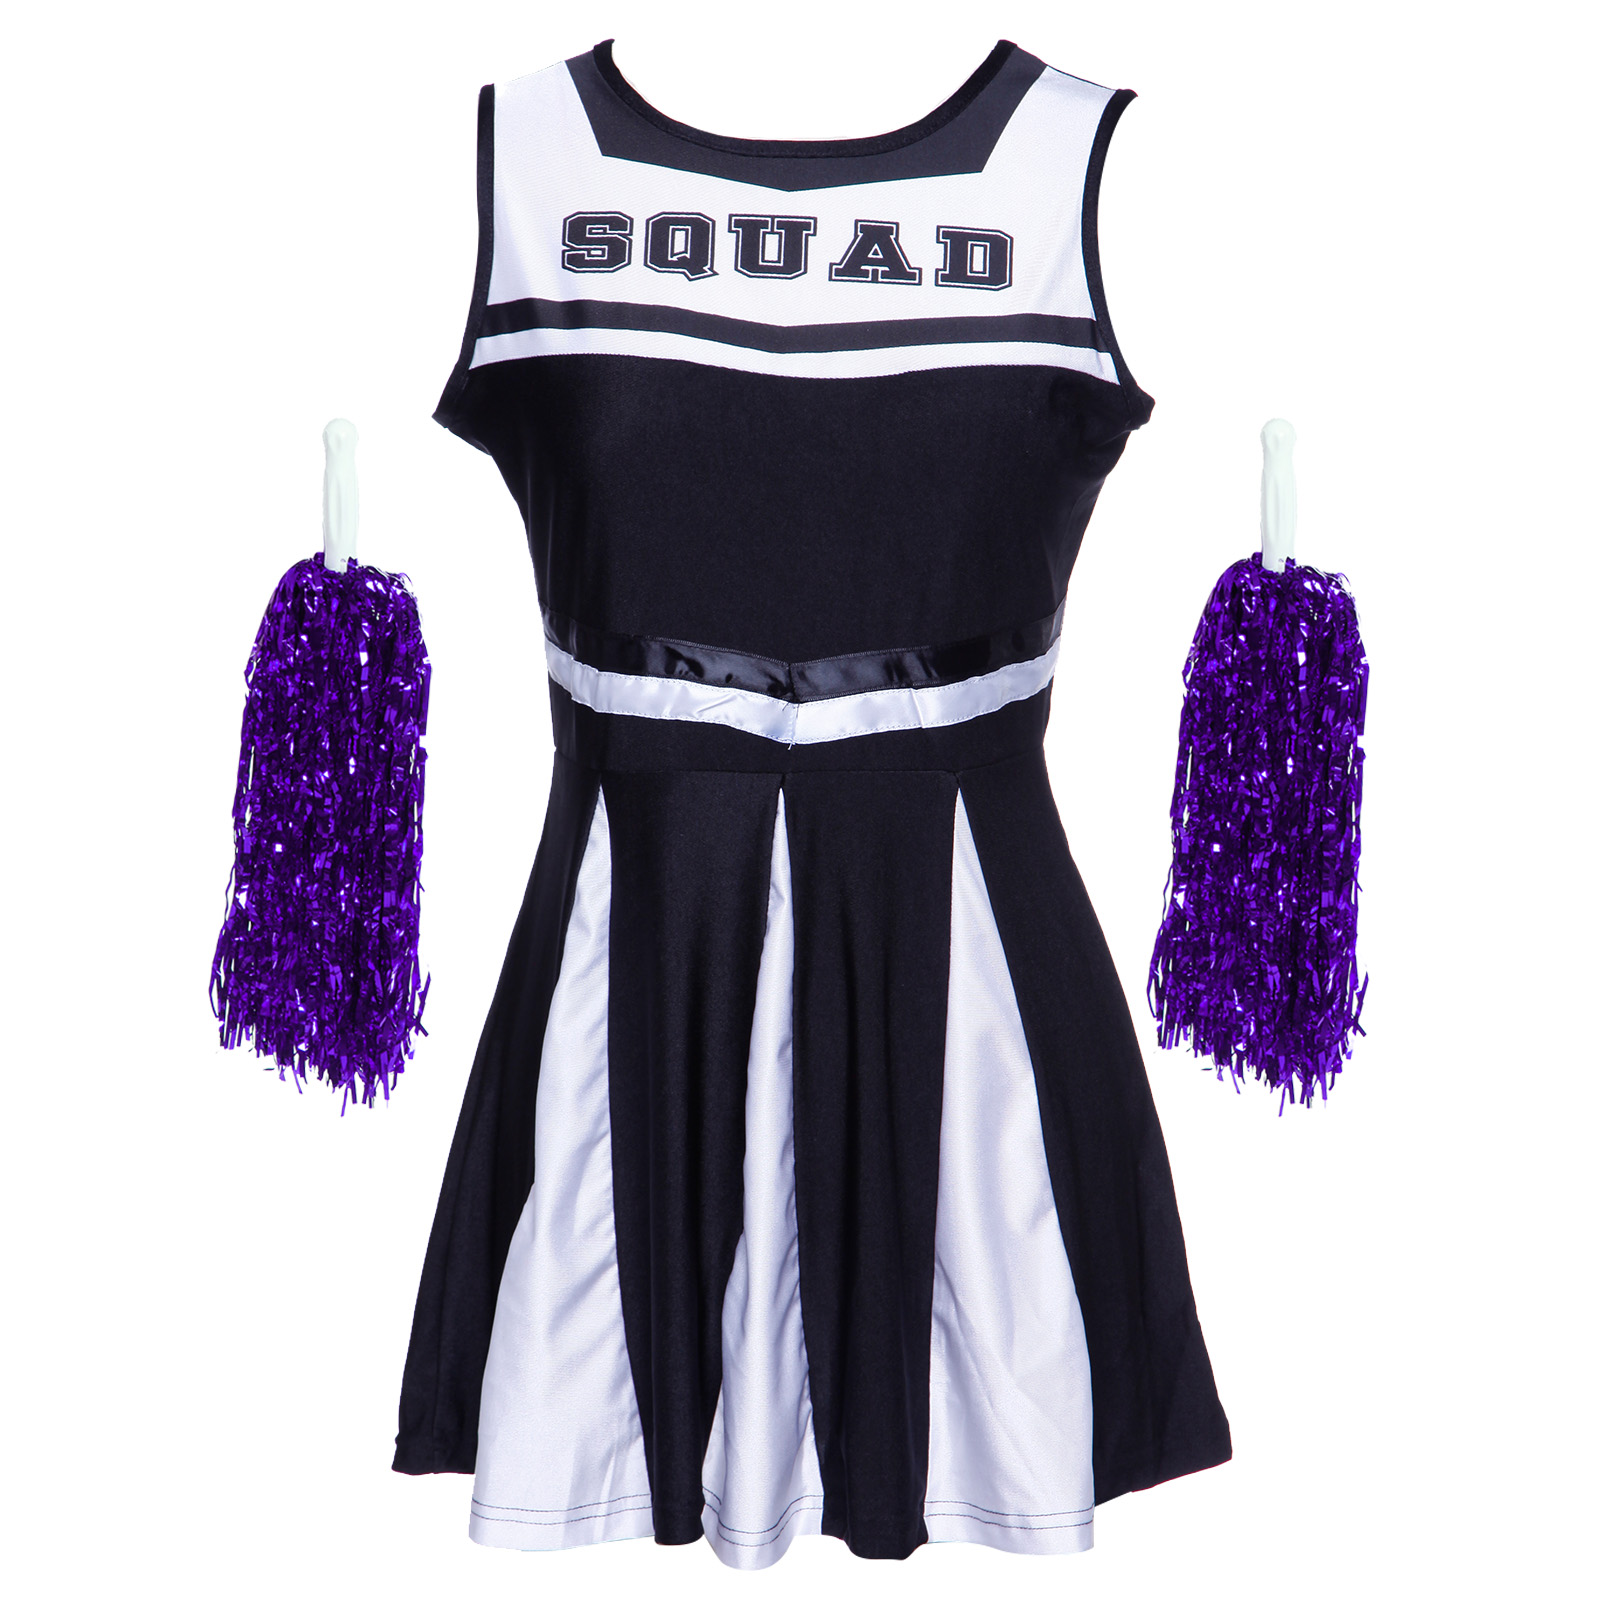 Cheerleader-Fancy-Dress-Outfit-High-School-Musical-Cheer-Uniform-Costume-Pompoms miniature 7